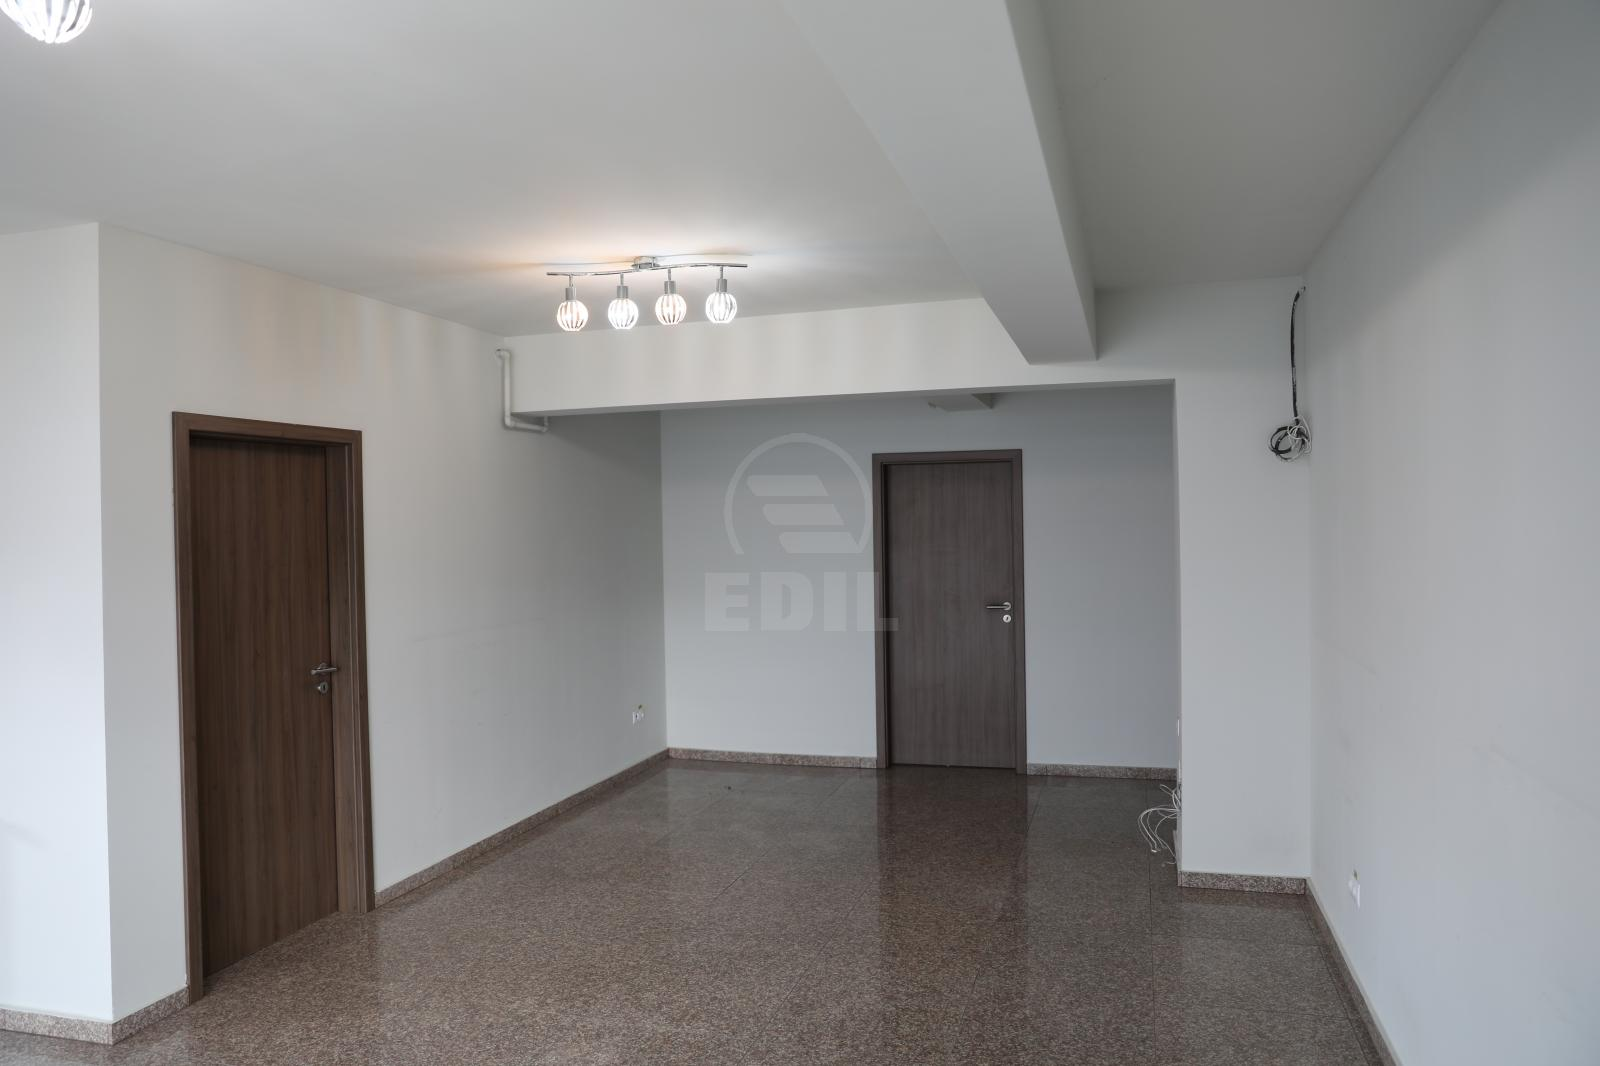 Commercial space for sale 3 rooms, SCCJ297529-3